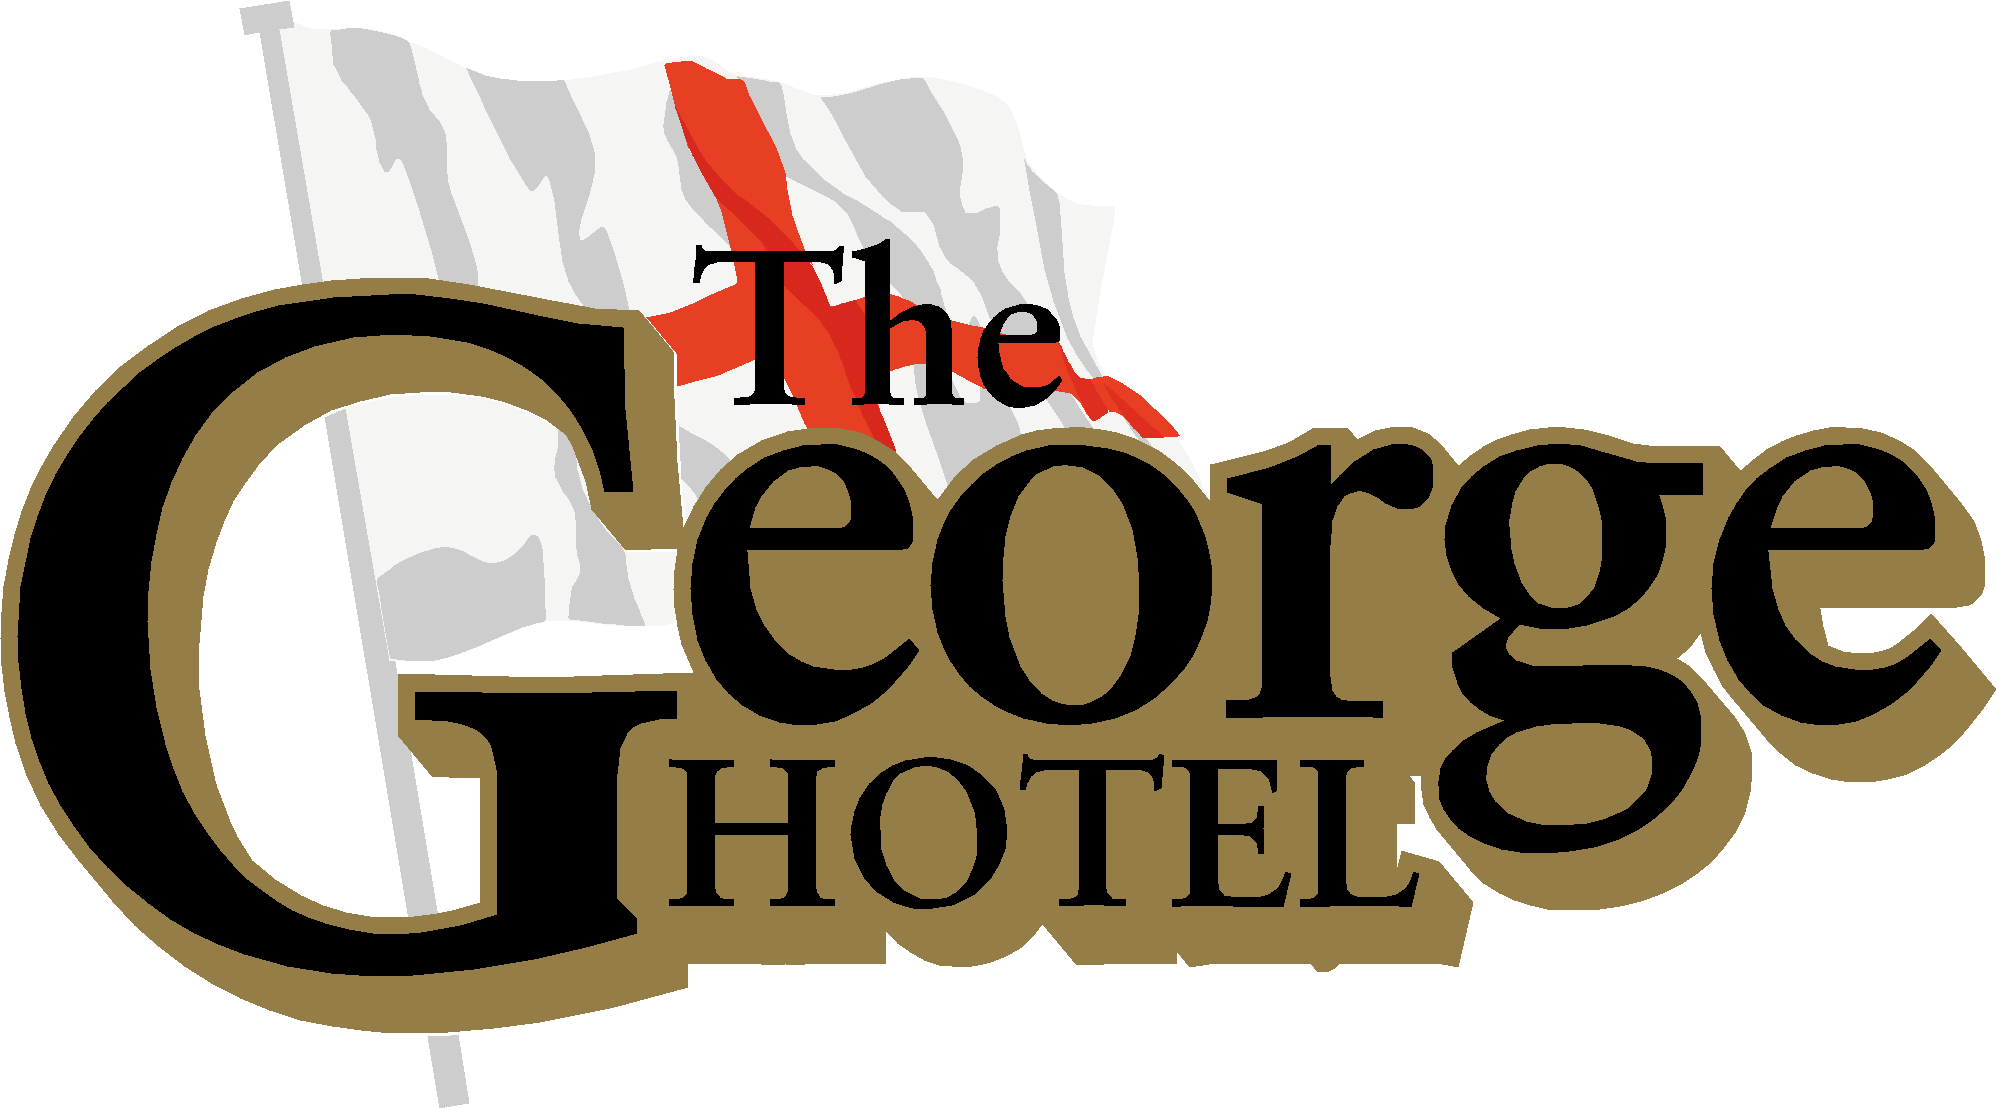 An image labelled The George Hotel Logo